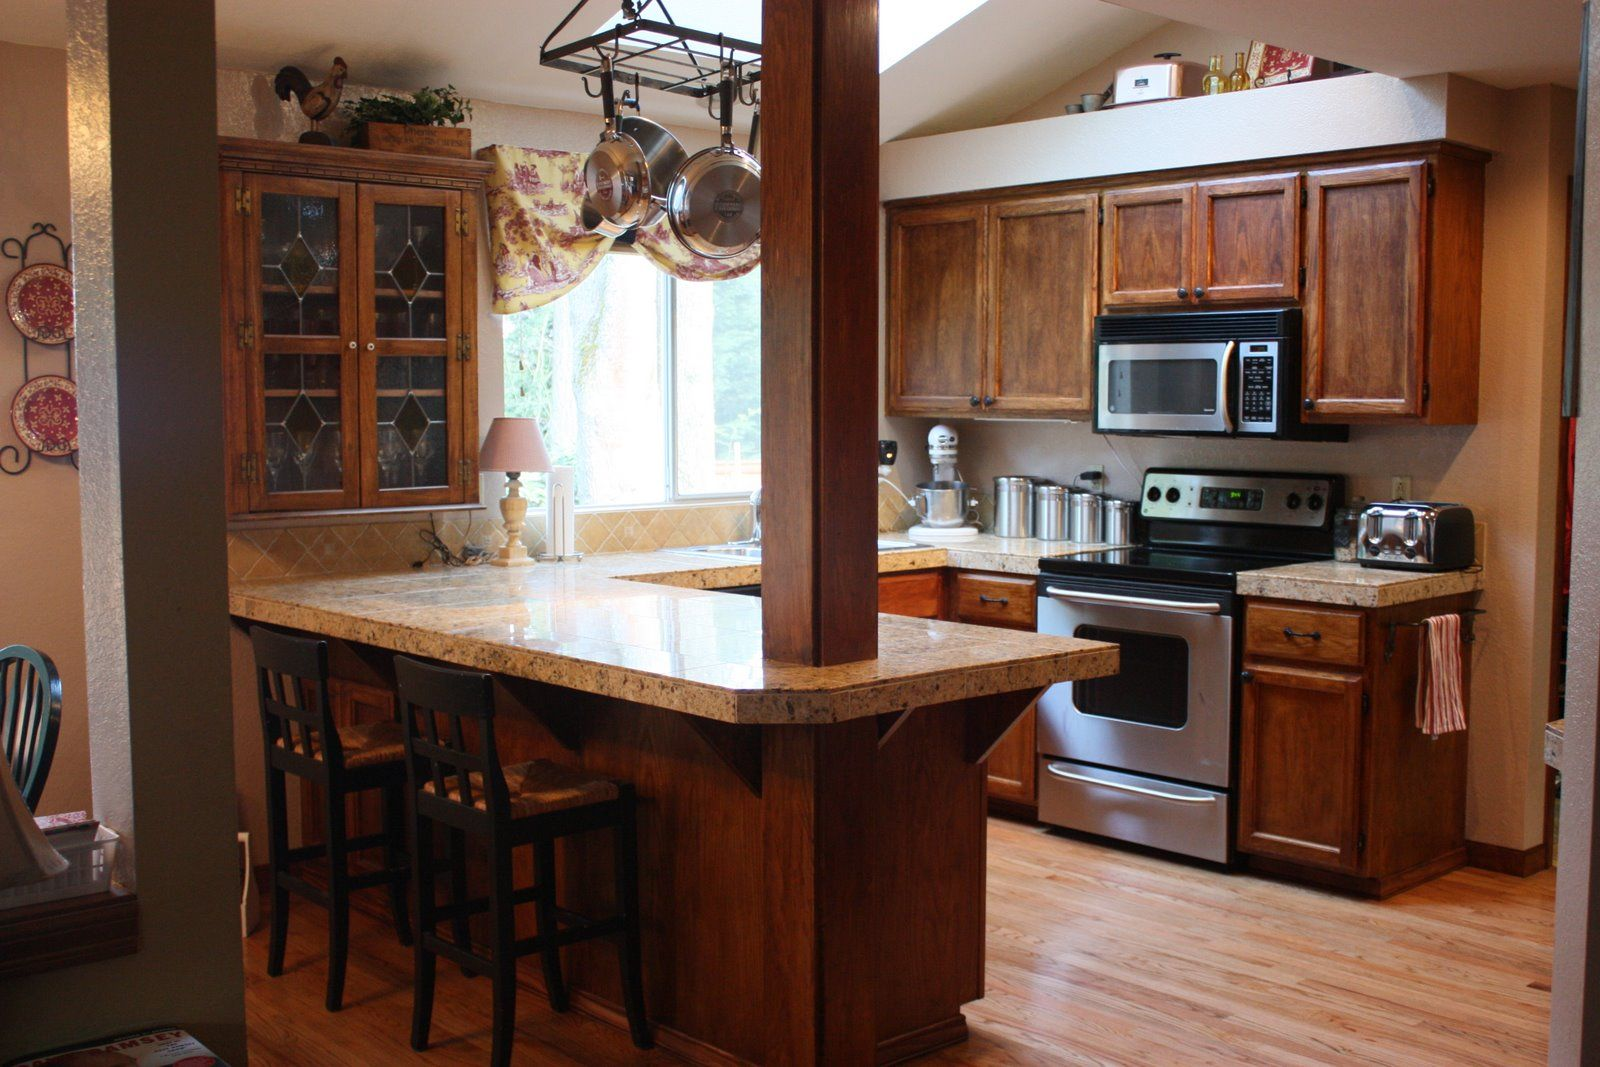 small kitchen remodeling ideas small kitchen remodel before and after wallpaper small on kitchen remodel ideas id=77840